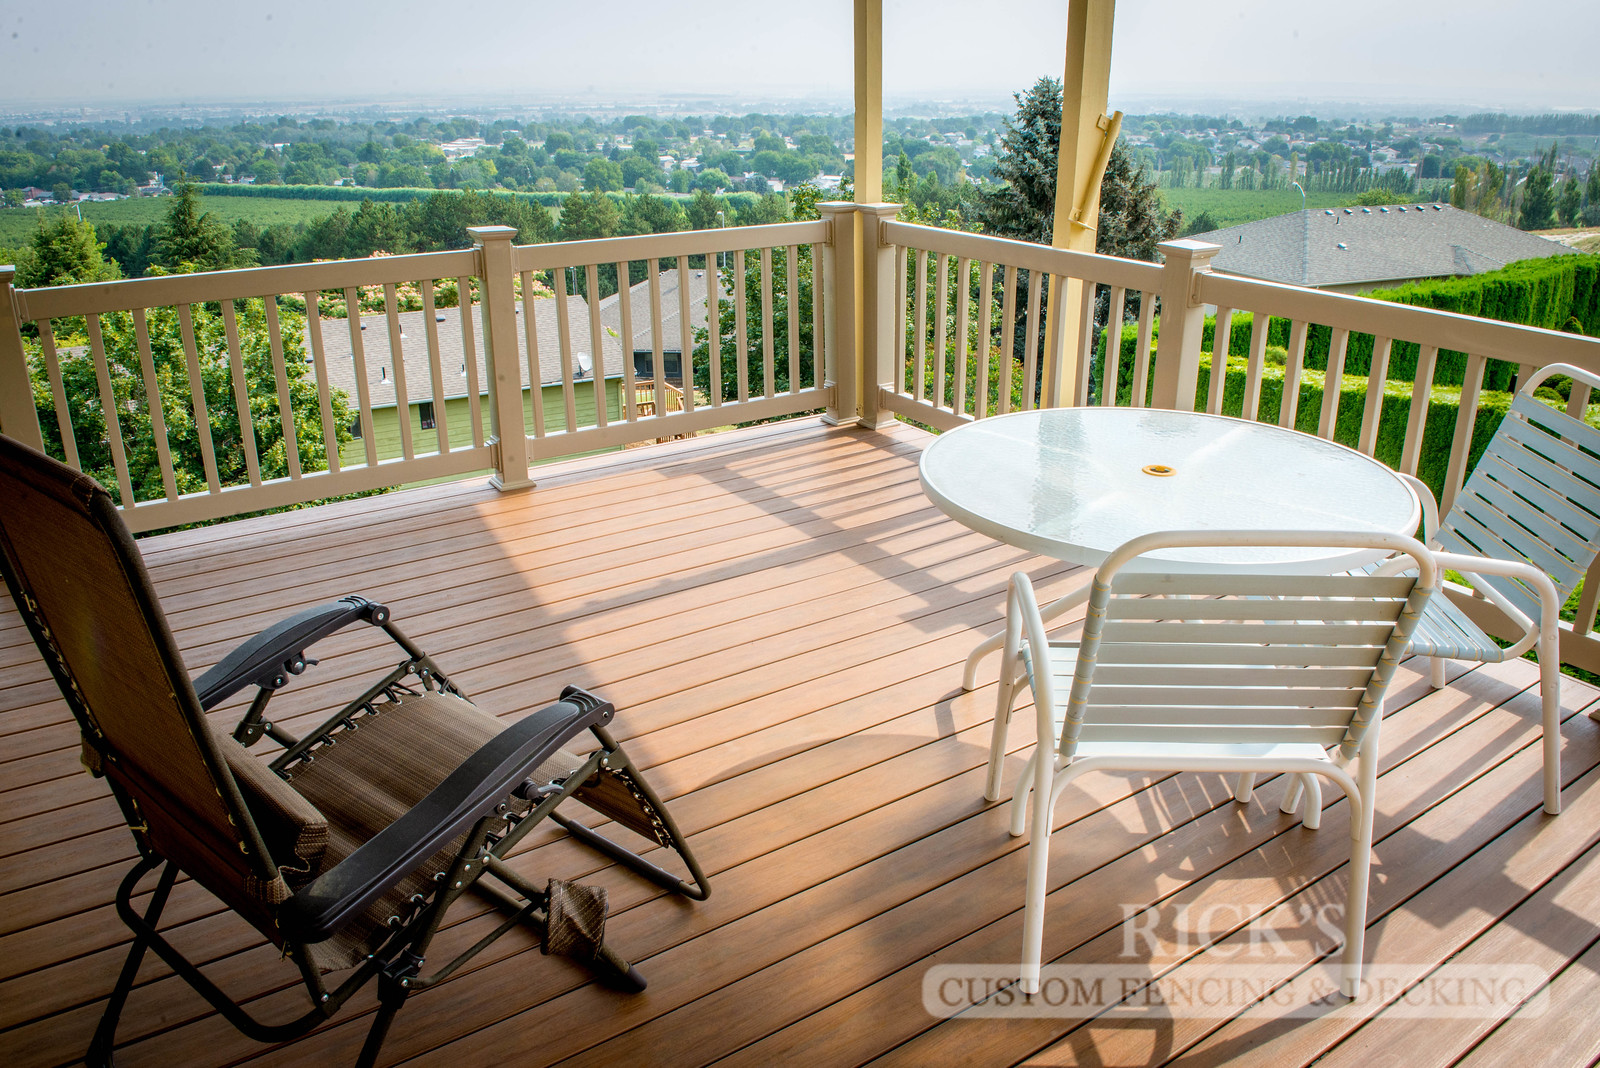 1202 - LifeStyle HDPE Composite Decking